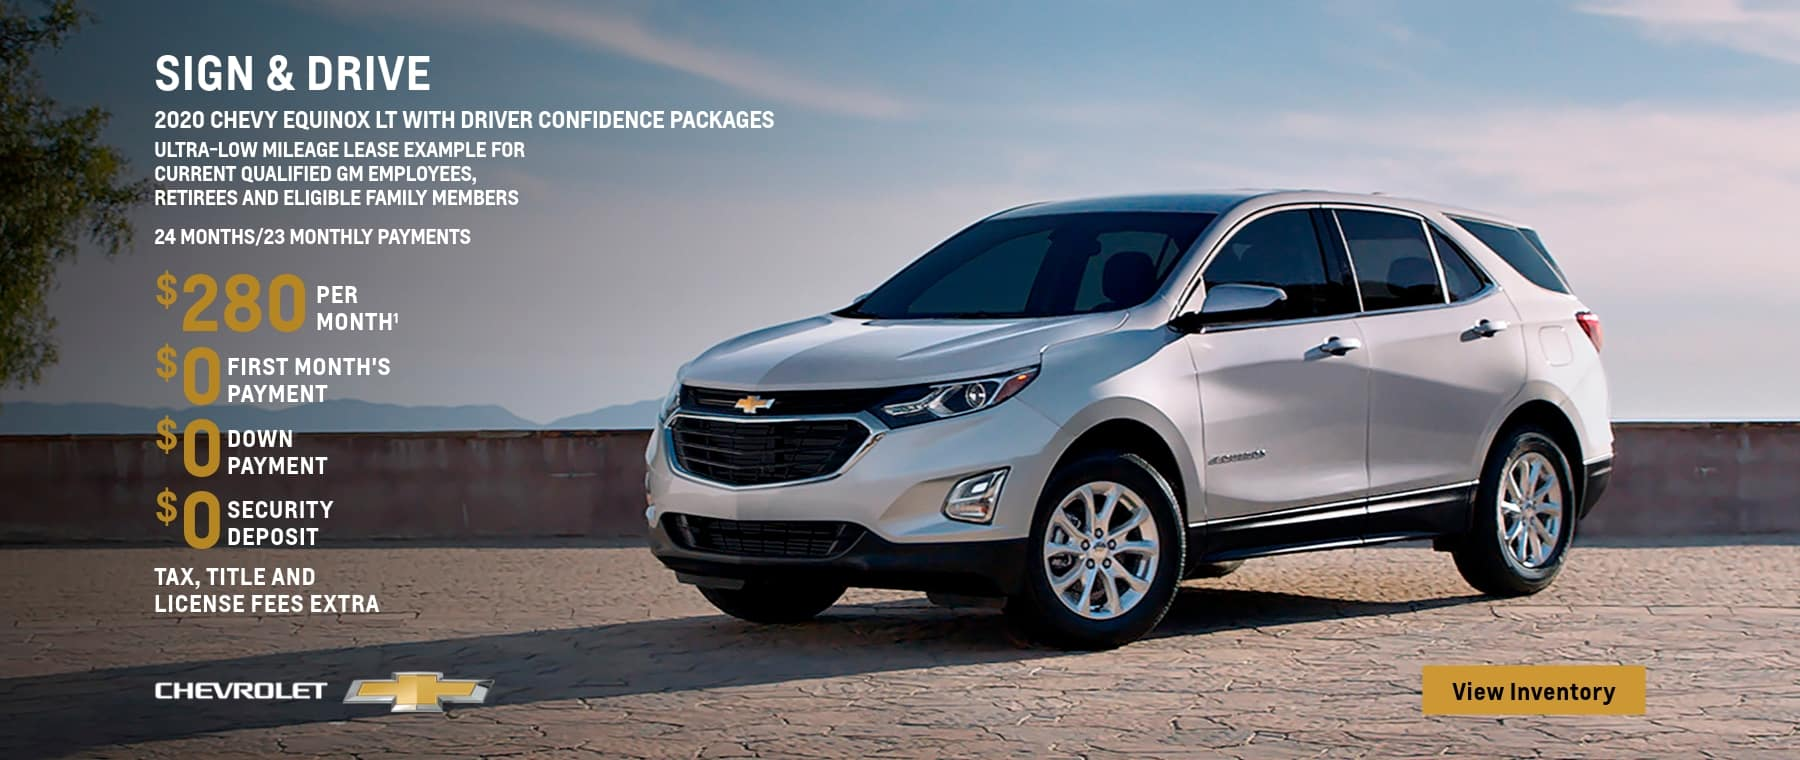 2020 Equinox LT with Drive Confidence Packages. Sign & Drive Ultra-Low Mileage Lease Example for Current Qualified GM Employees, Retirees and Eligible Family Members. $280 per month.